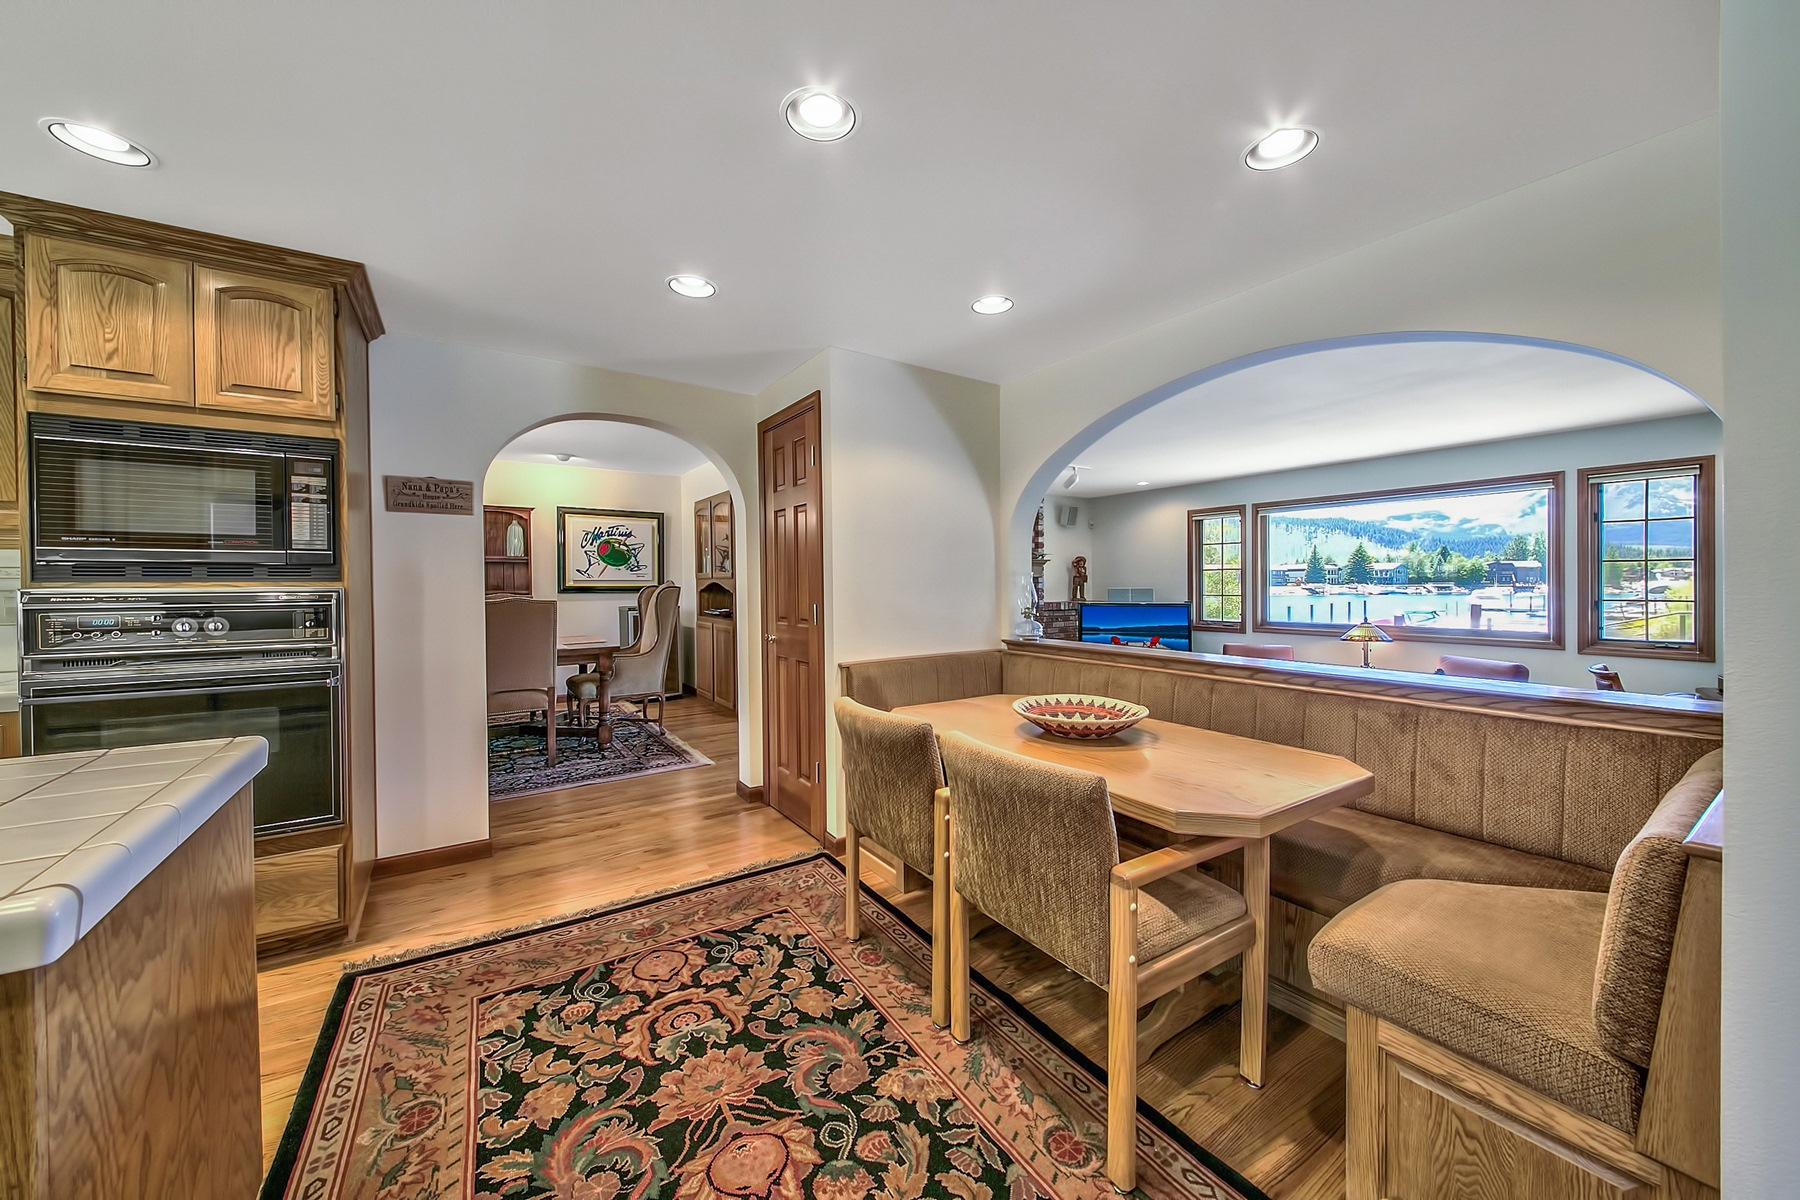 Additional photo for property listing at 358 Beach Lane  South Lake Tahoe, California 96150 United States